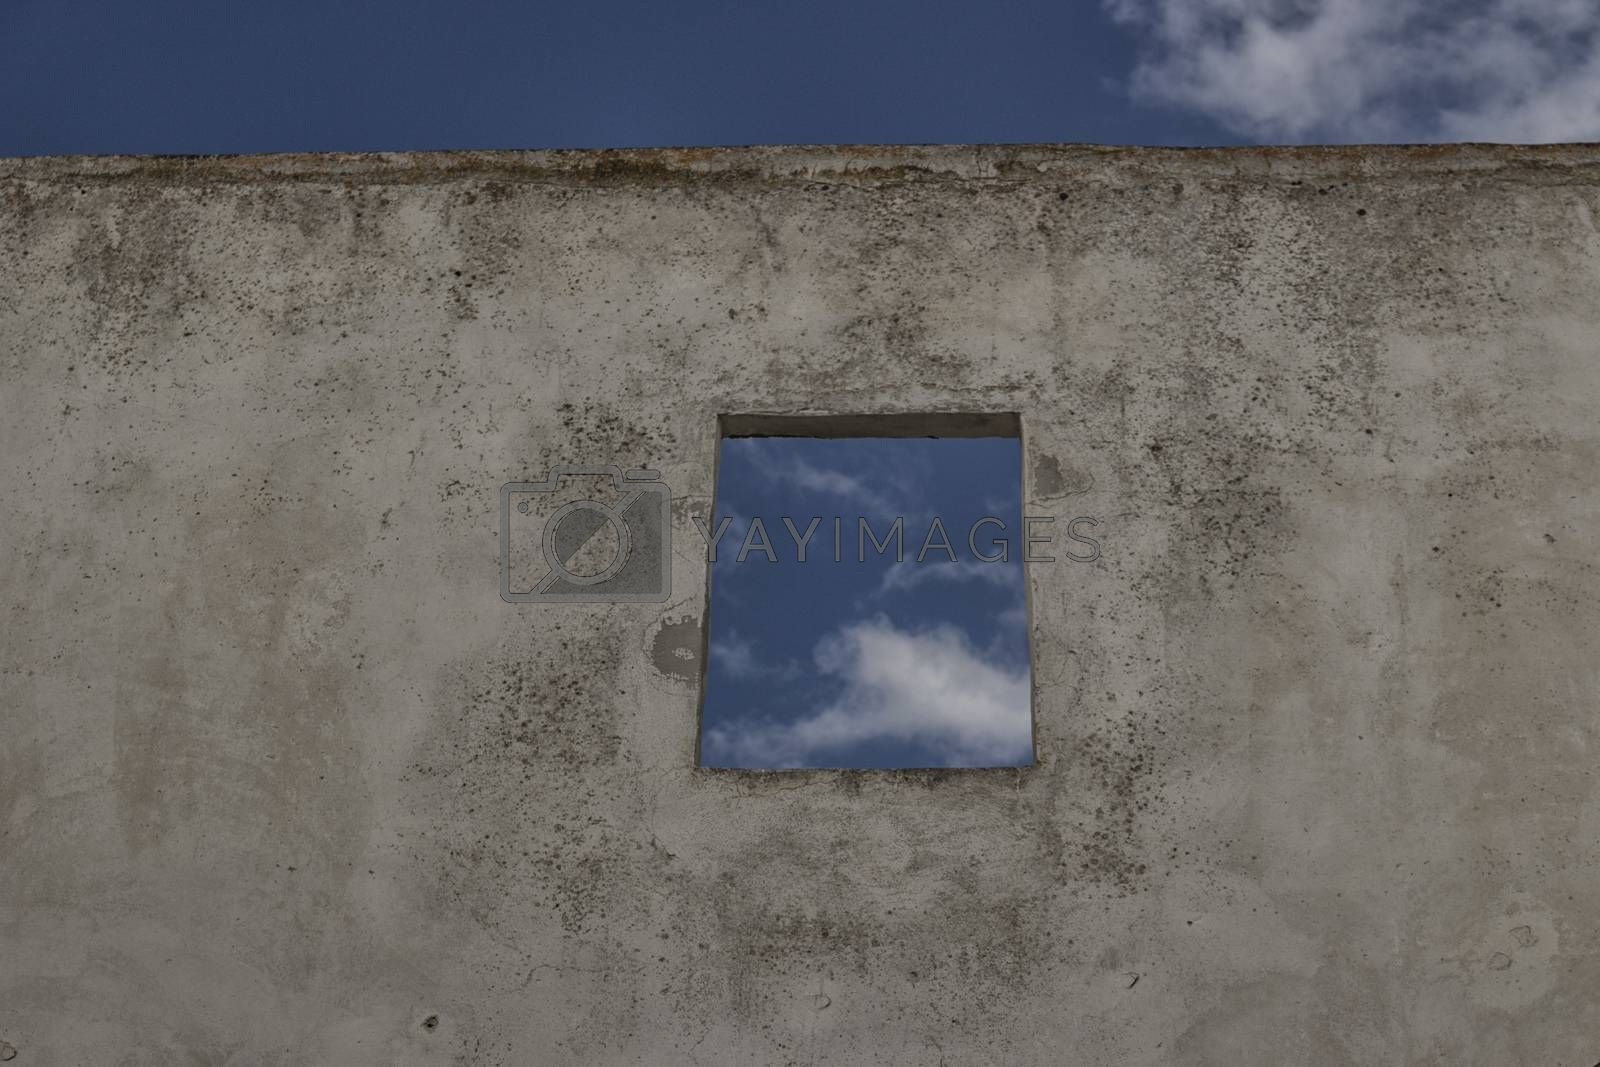 Square window on old ruined wall on the roof of Doxi Stracca Fontana Palace about 1760 A.D. in the old town of Gallipoli (Le)) in the southern Italy